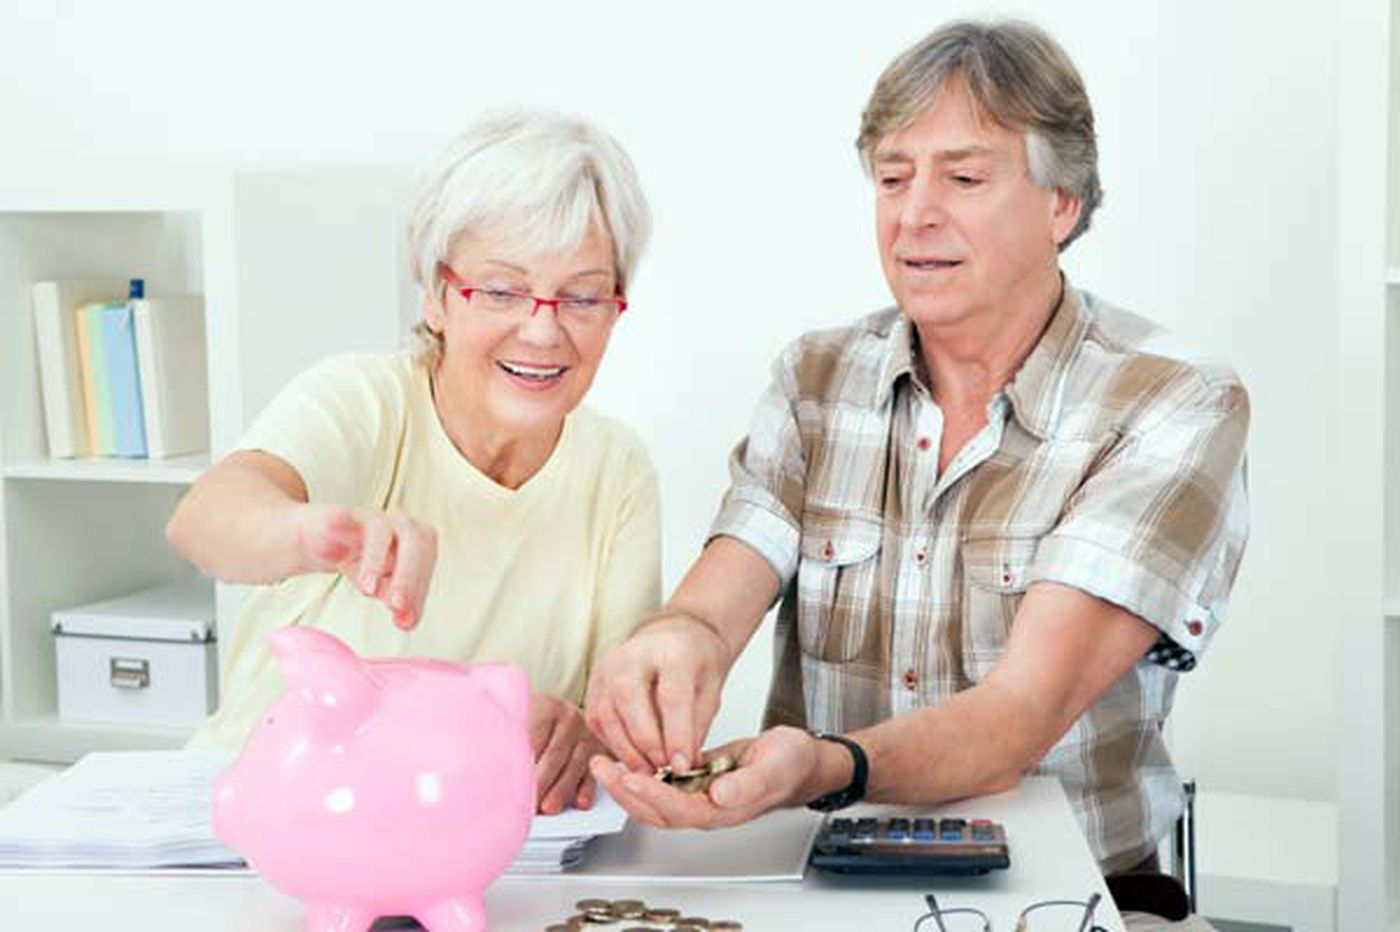 Go to the top of your retirement adviser's priority list